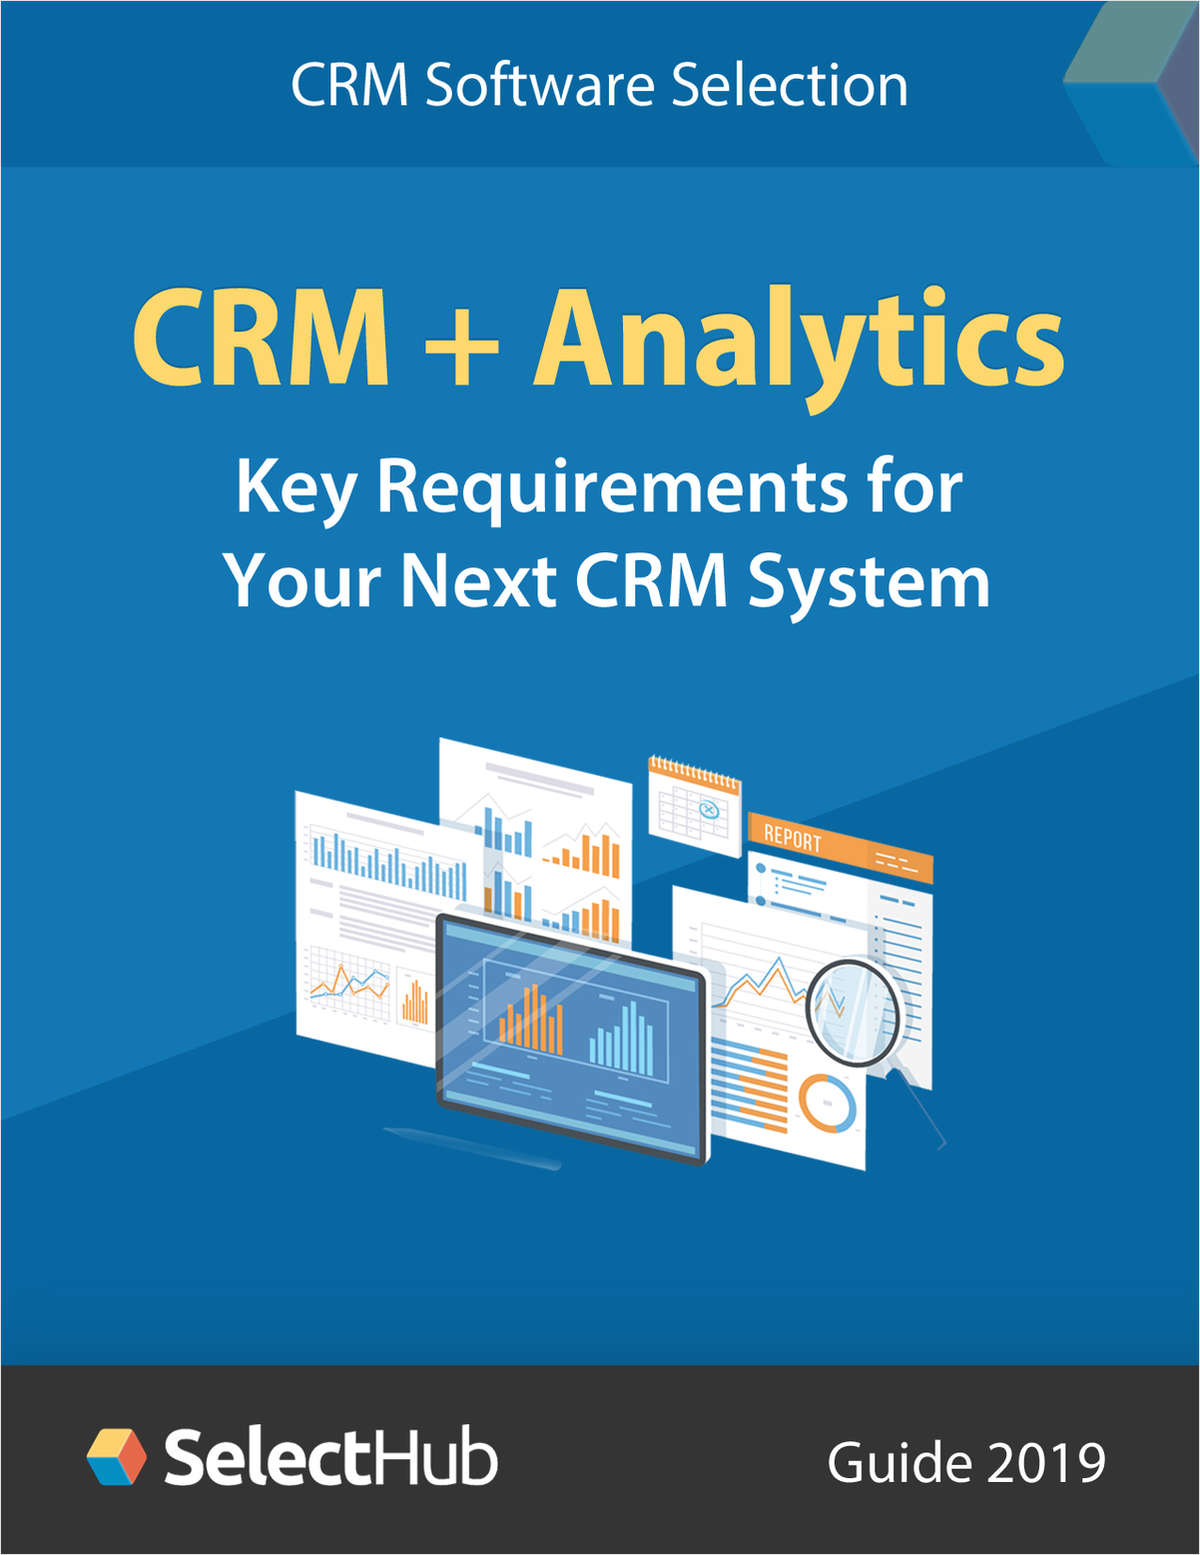 CRM + Analytics: Key Requirements for Your Next CRM System